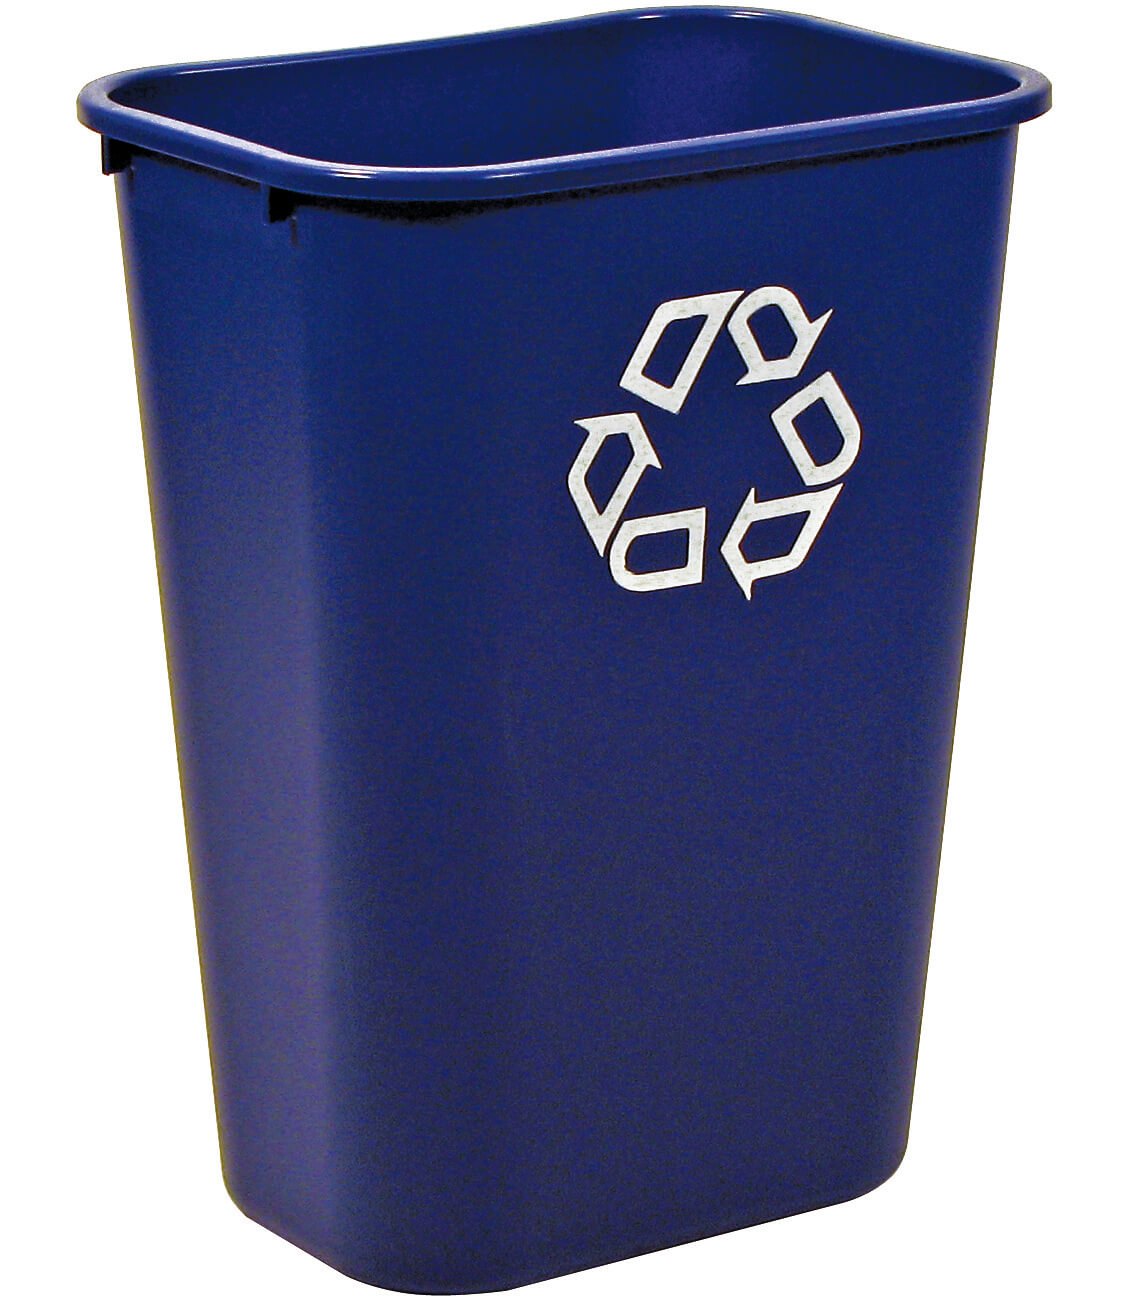 recycle bins Learn these better ways to recycle  can i recycle plastic bags in the recycling bin  so the list of items that can be put into recycling bins differs.